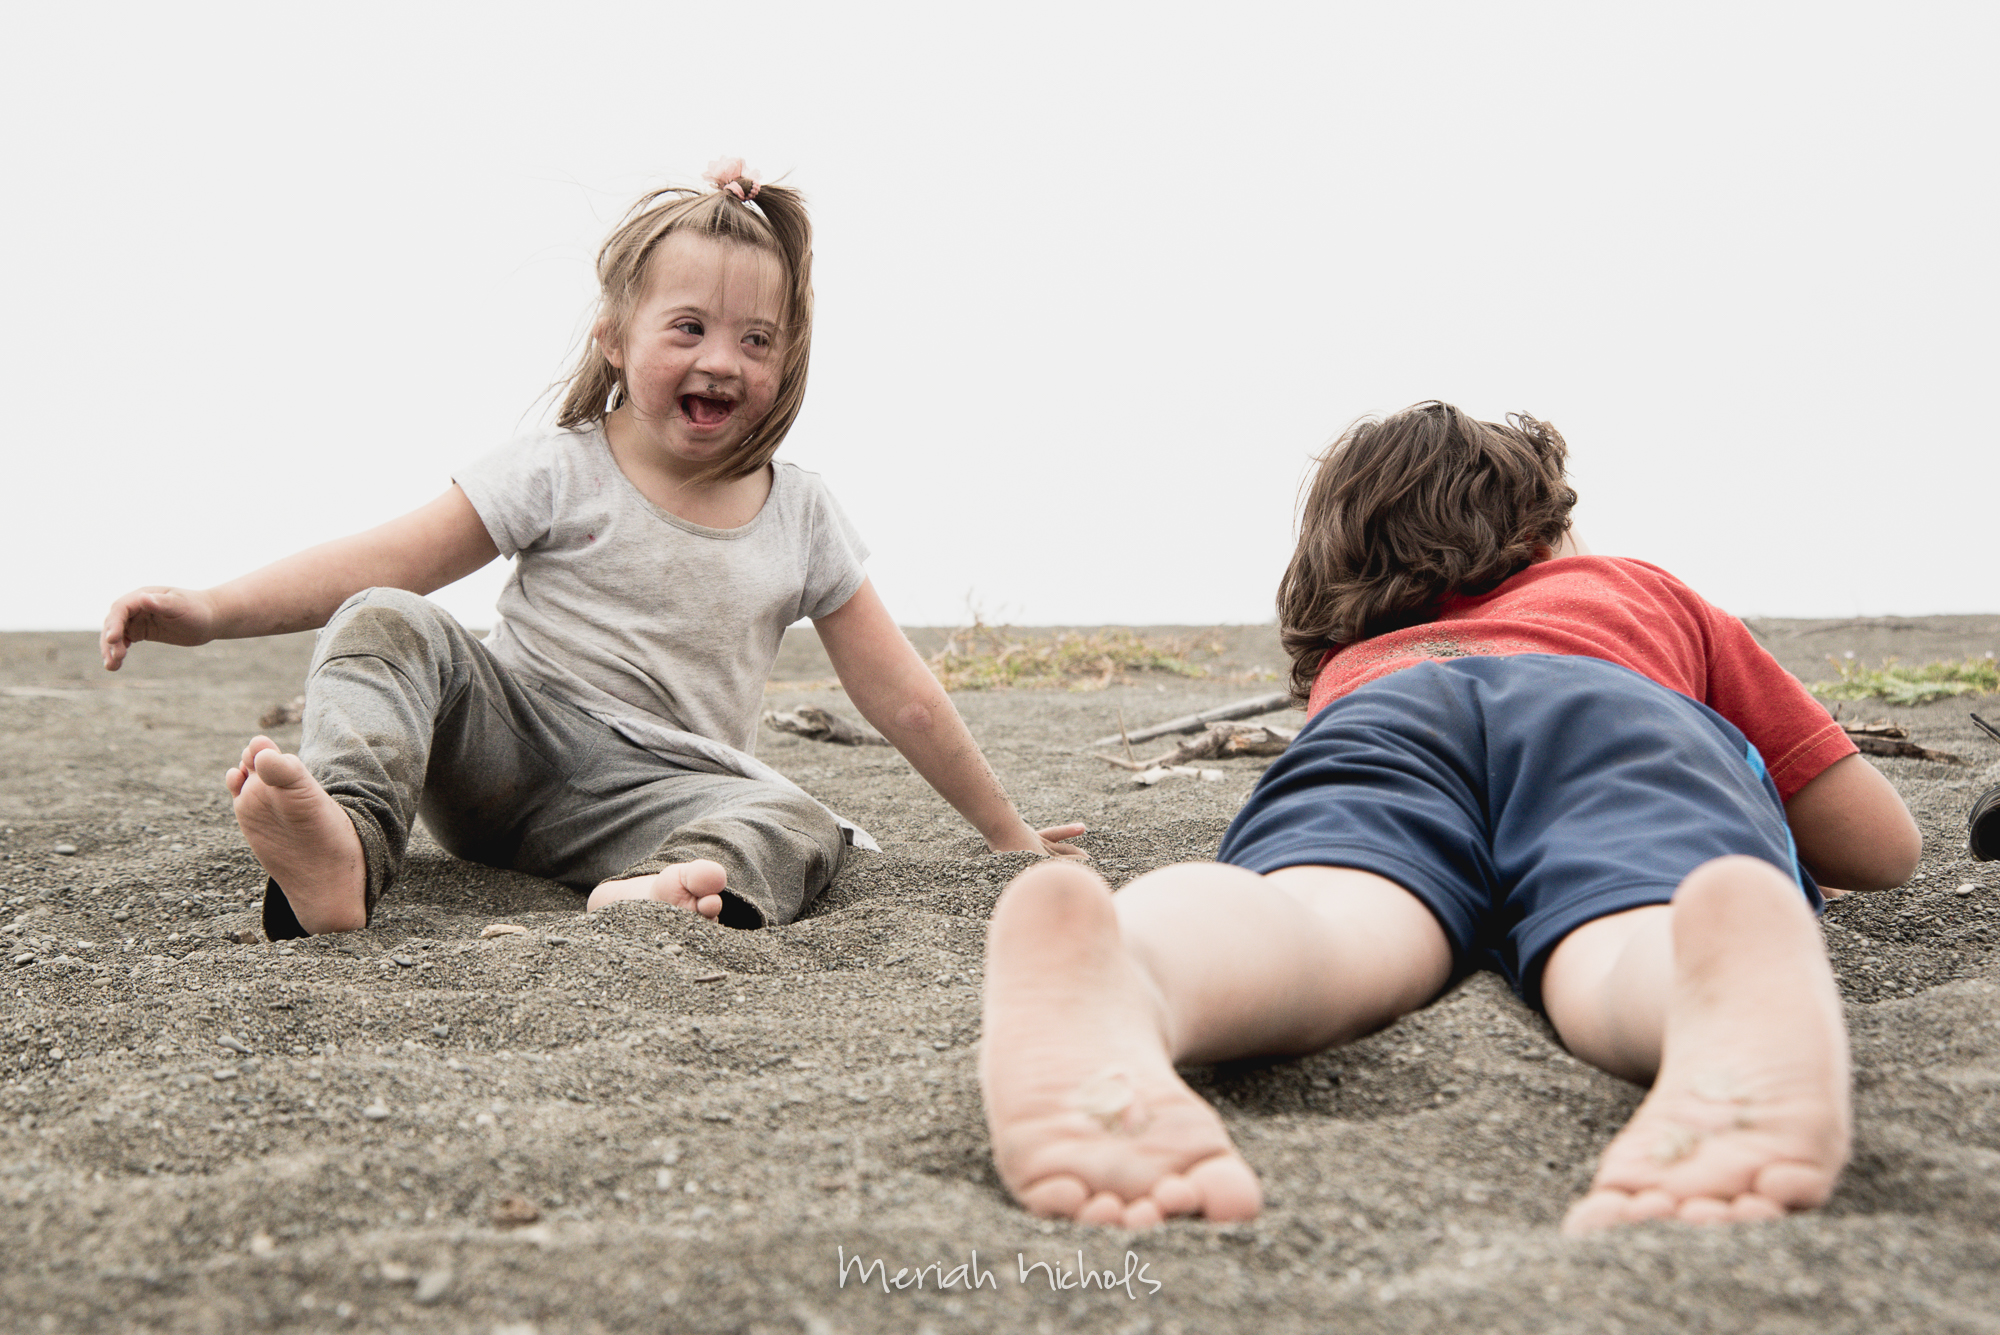 moxie laughing and playing in sand